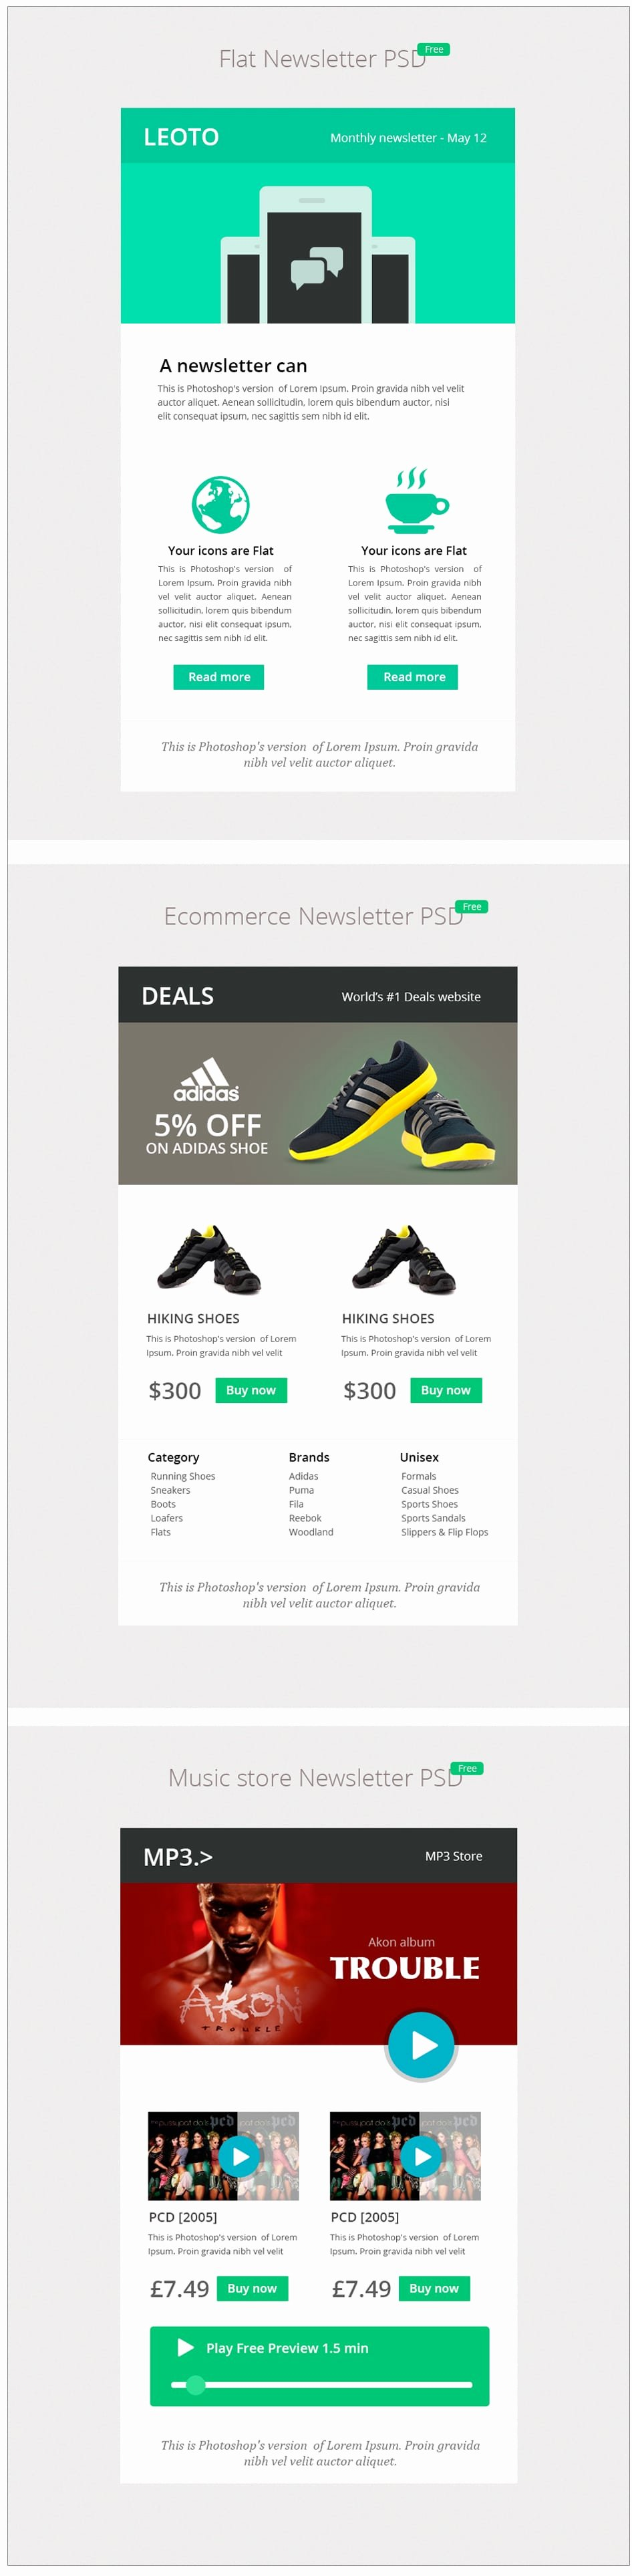 Free Email Template Psd Fresh Free Email Newsletter Templates Psd Css Author